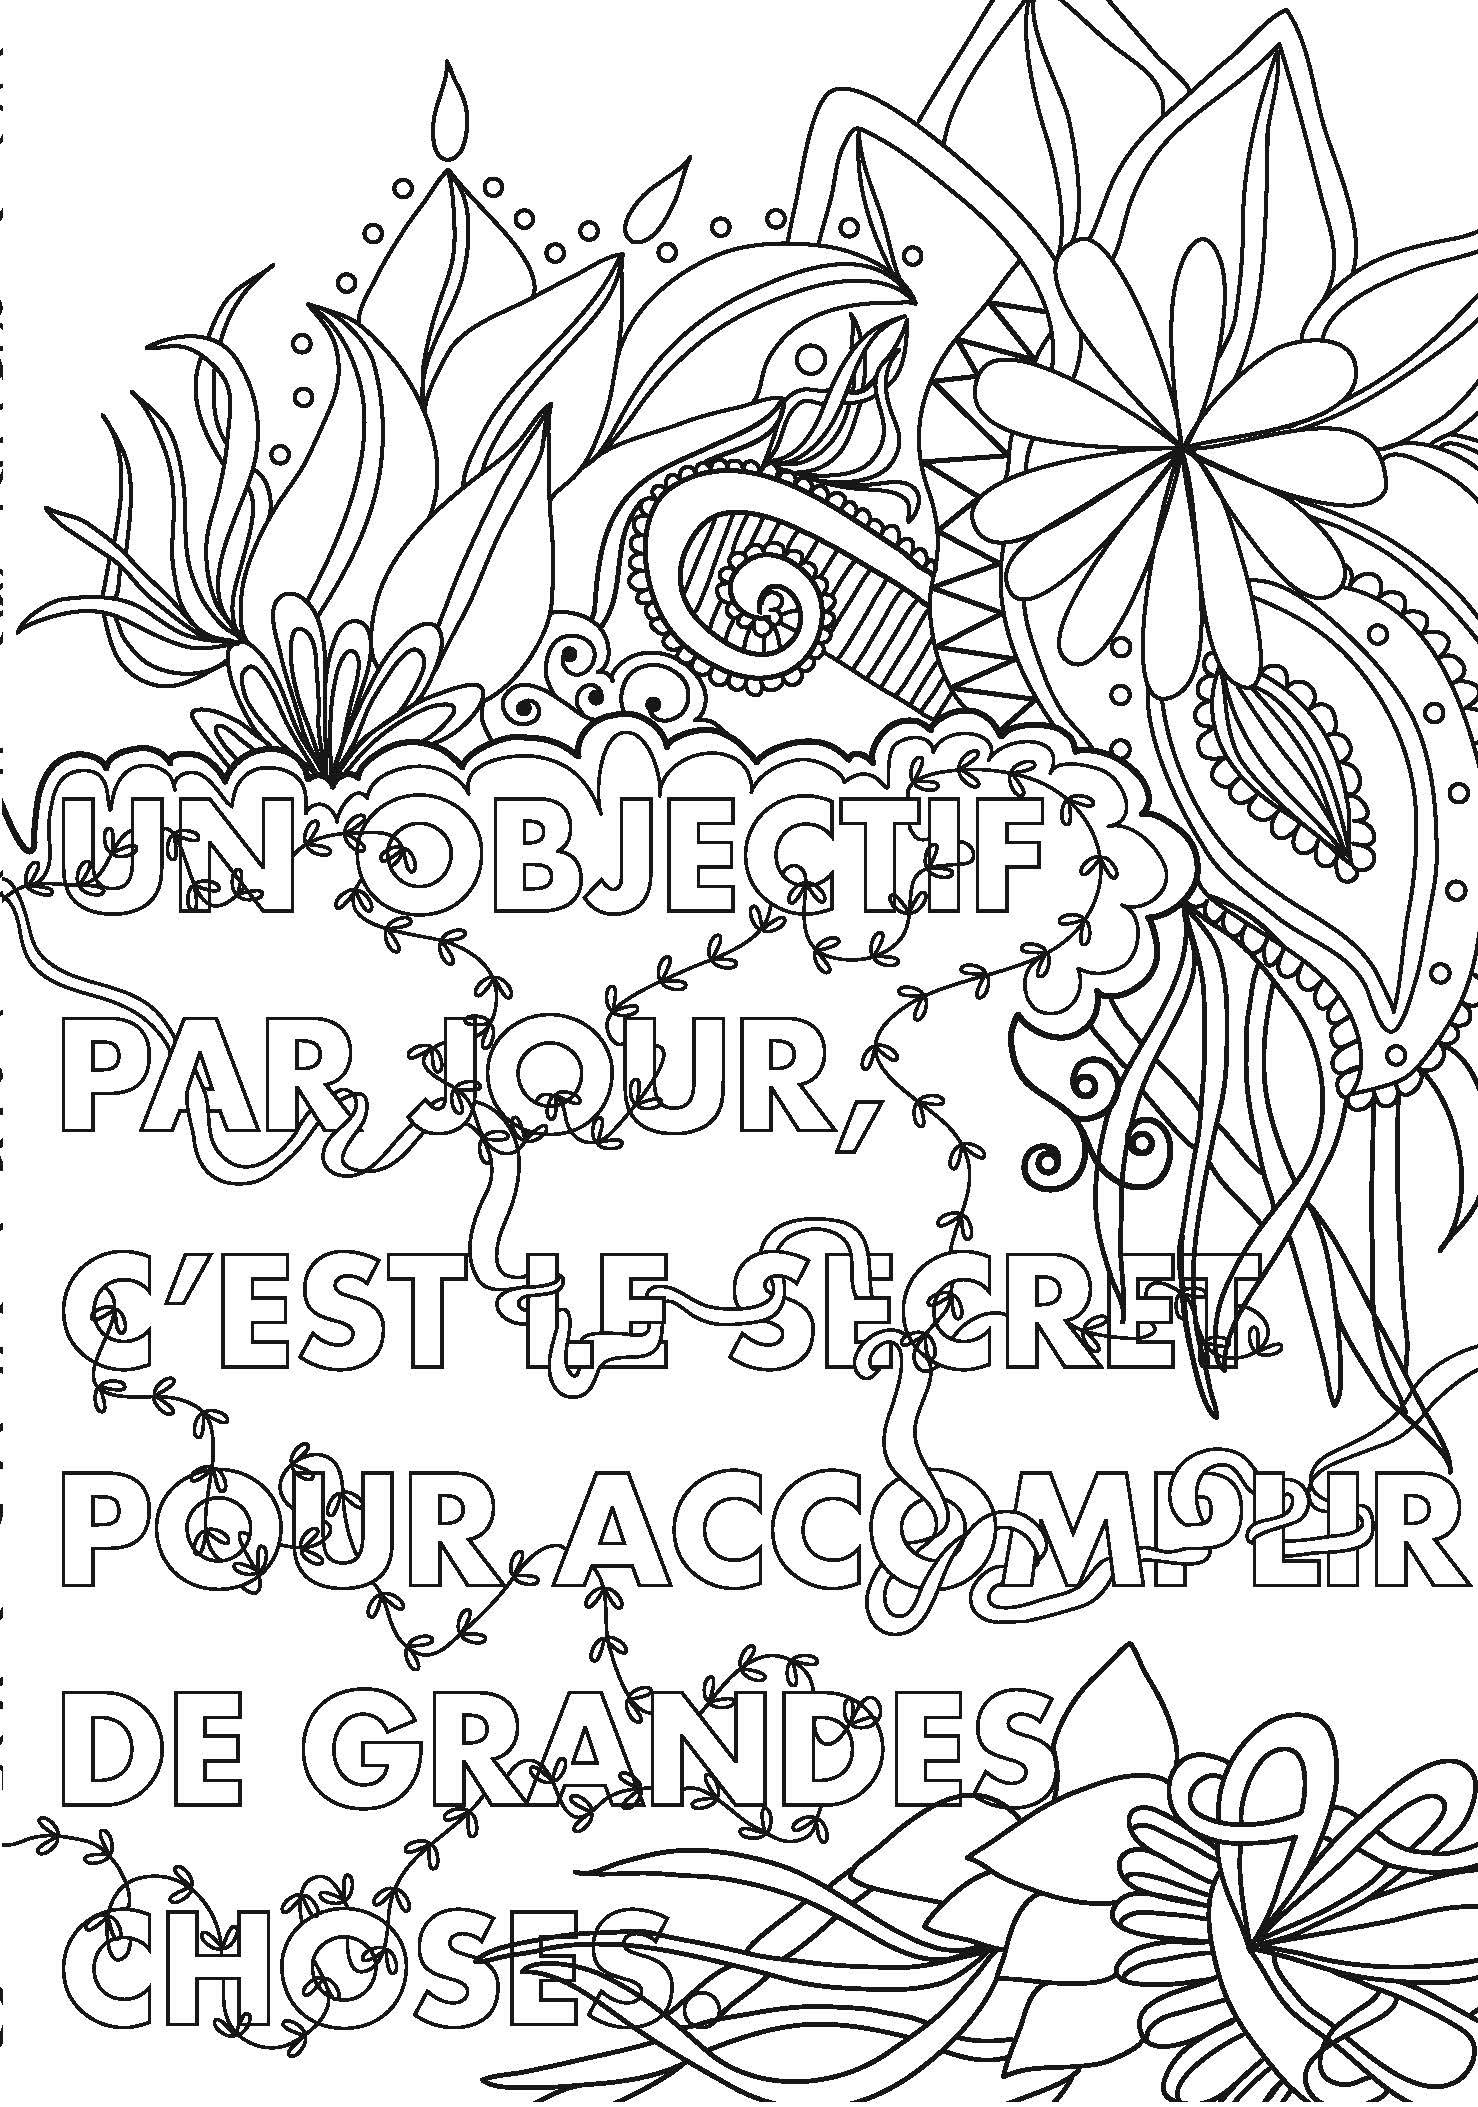 Coloriage adulte message - Dessin a colorier pour adulte ...